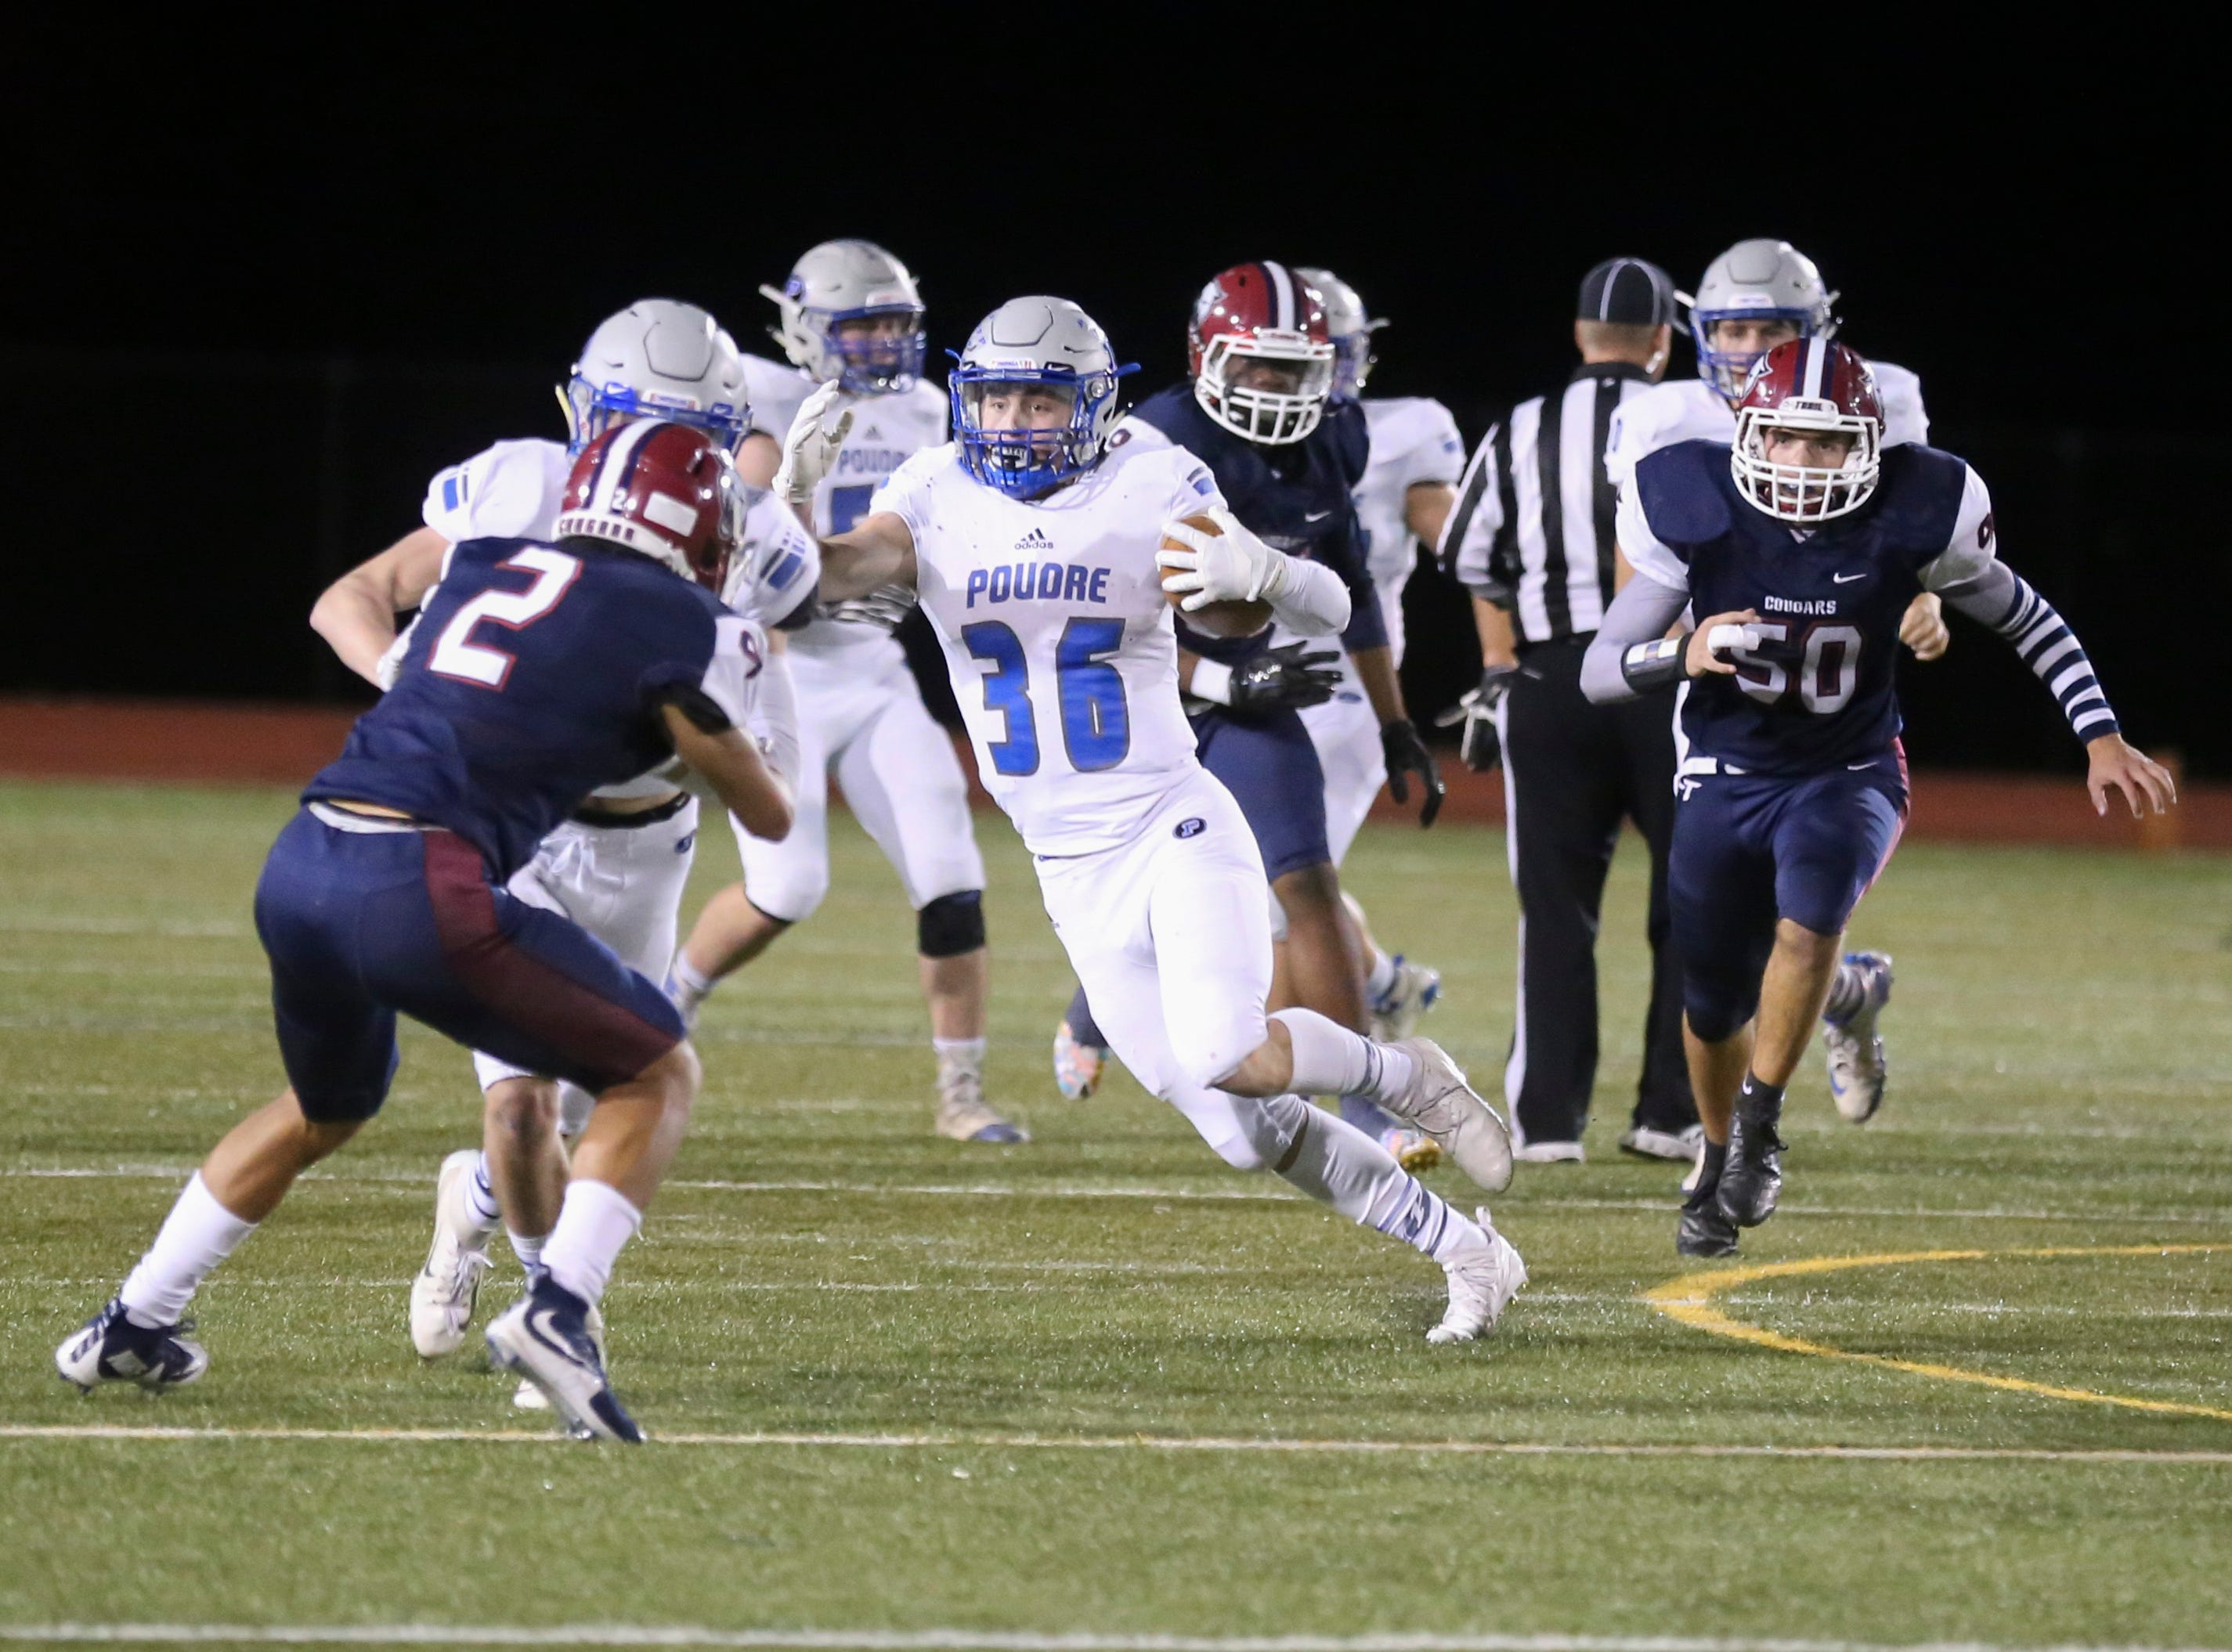 Poudre High School's Tate Satterfield runs the ball during the third quarter against Cherokee Trail High School on Friday evening.